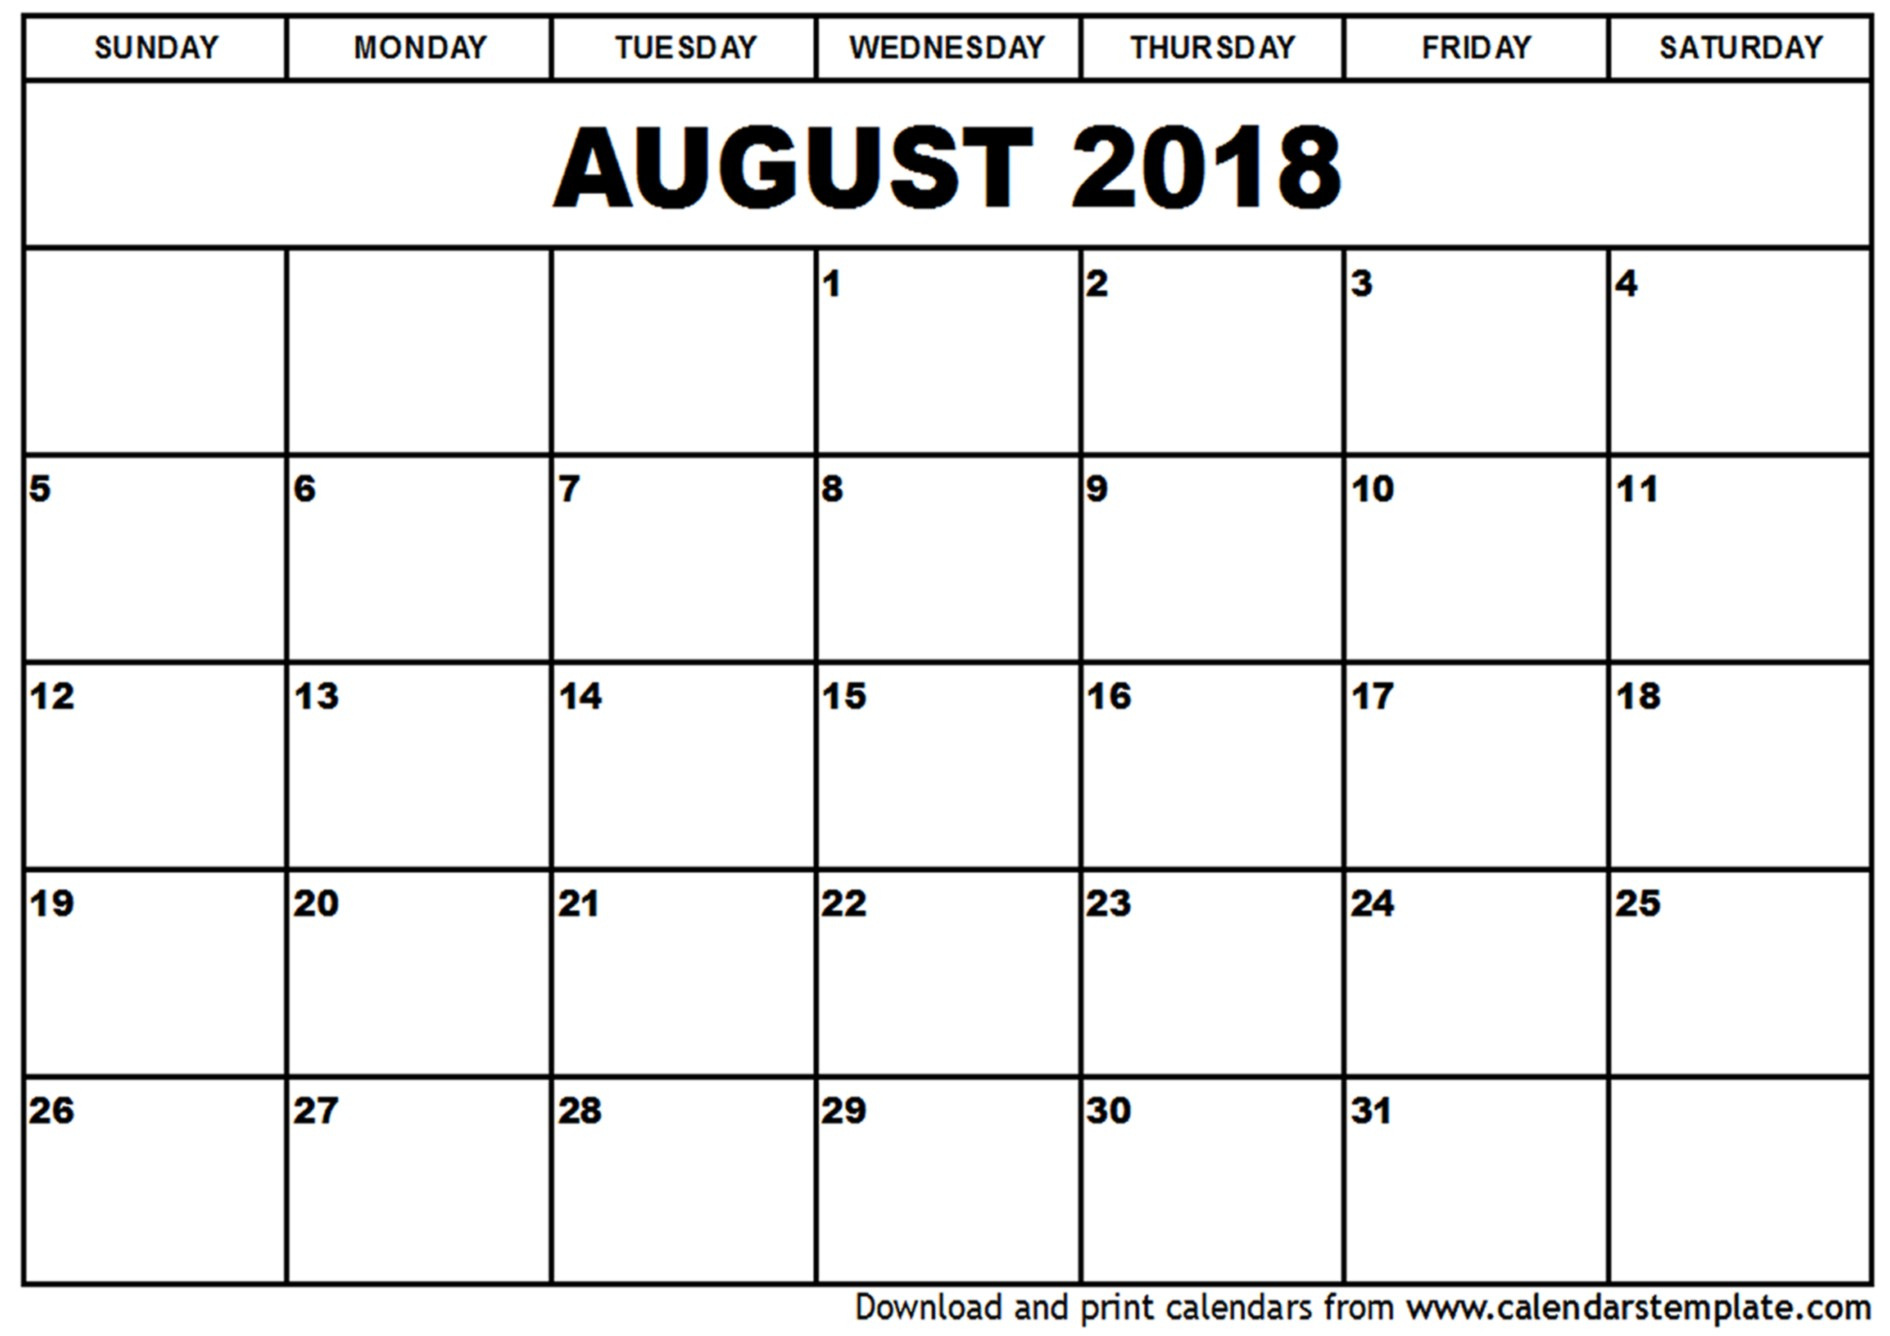 Free Blank Preschool August 2018 Calendars Printable For Free pertaining to August Calendar Template For Pre K